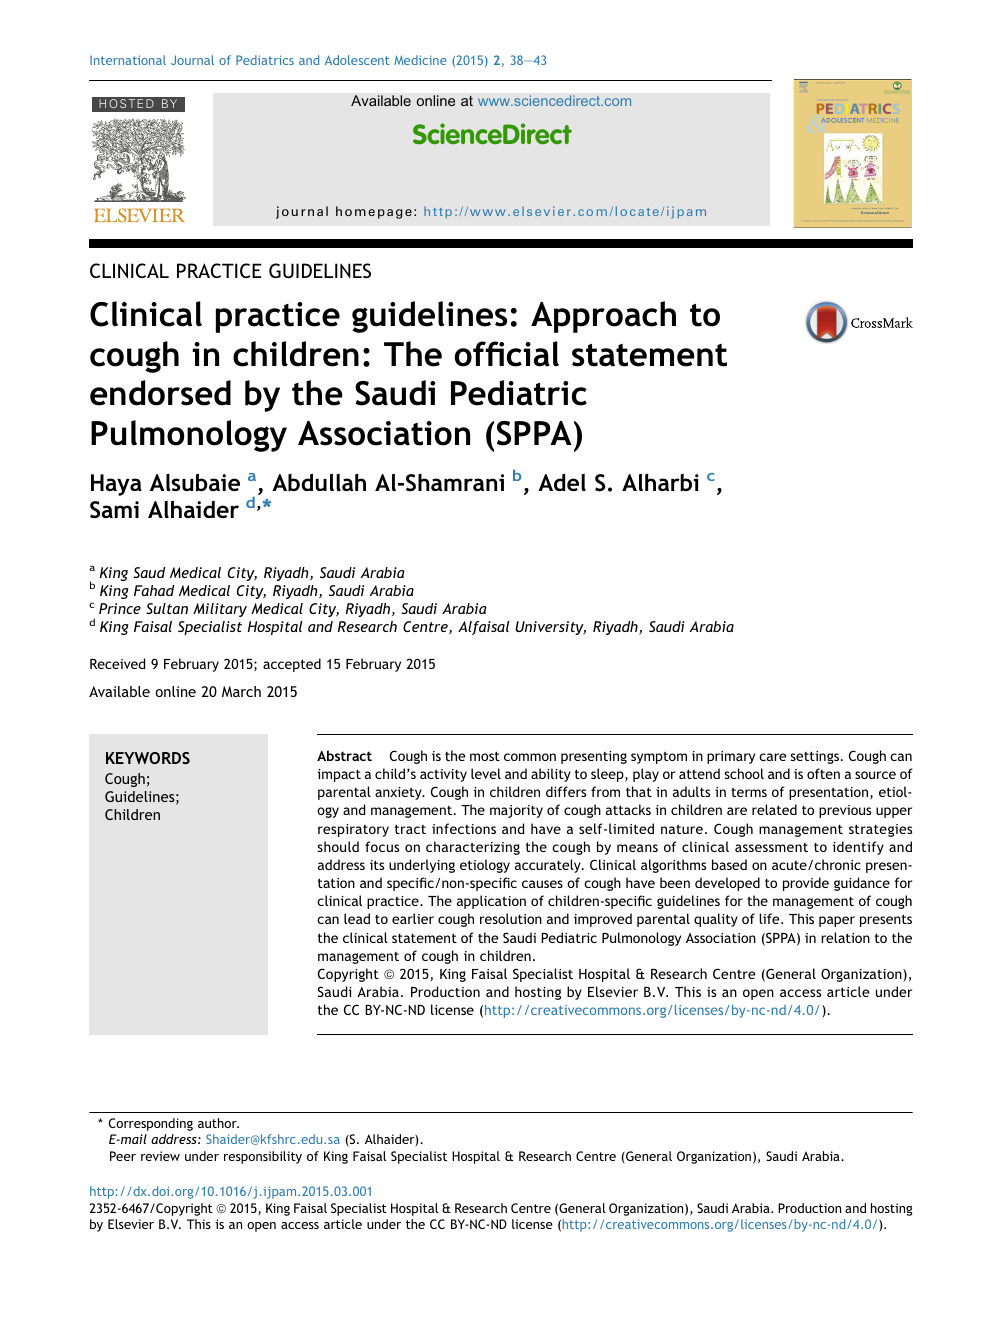 Clinical practice guidelines: Approach to cough in children